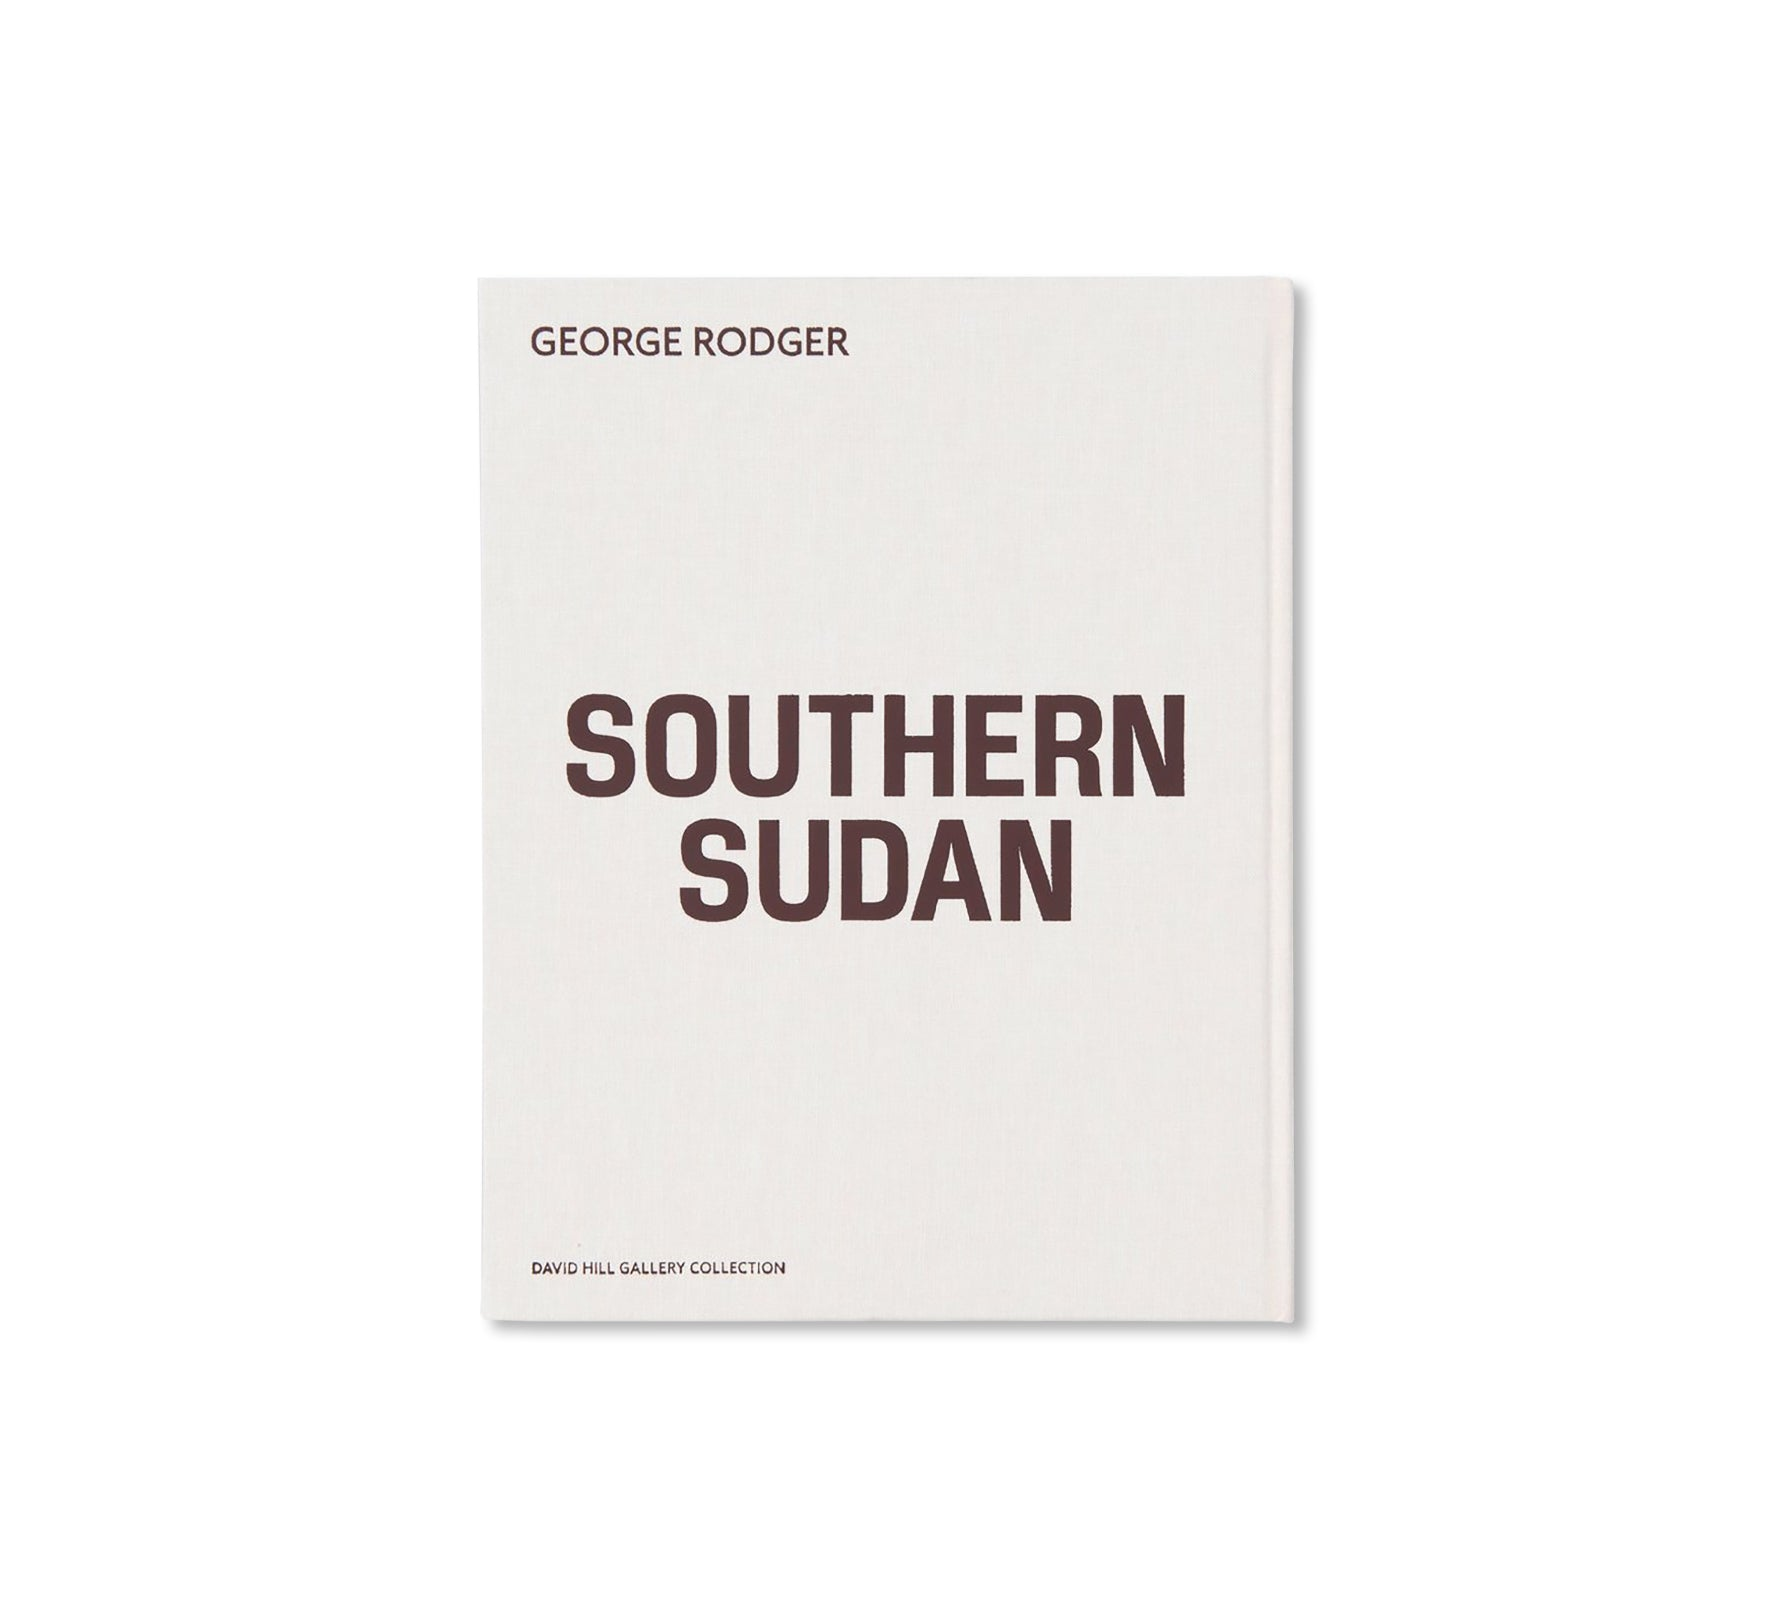 SOUTHERN SUDAN by George Rodger